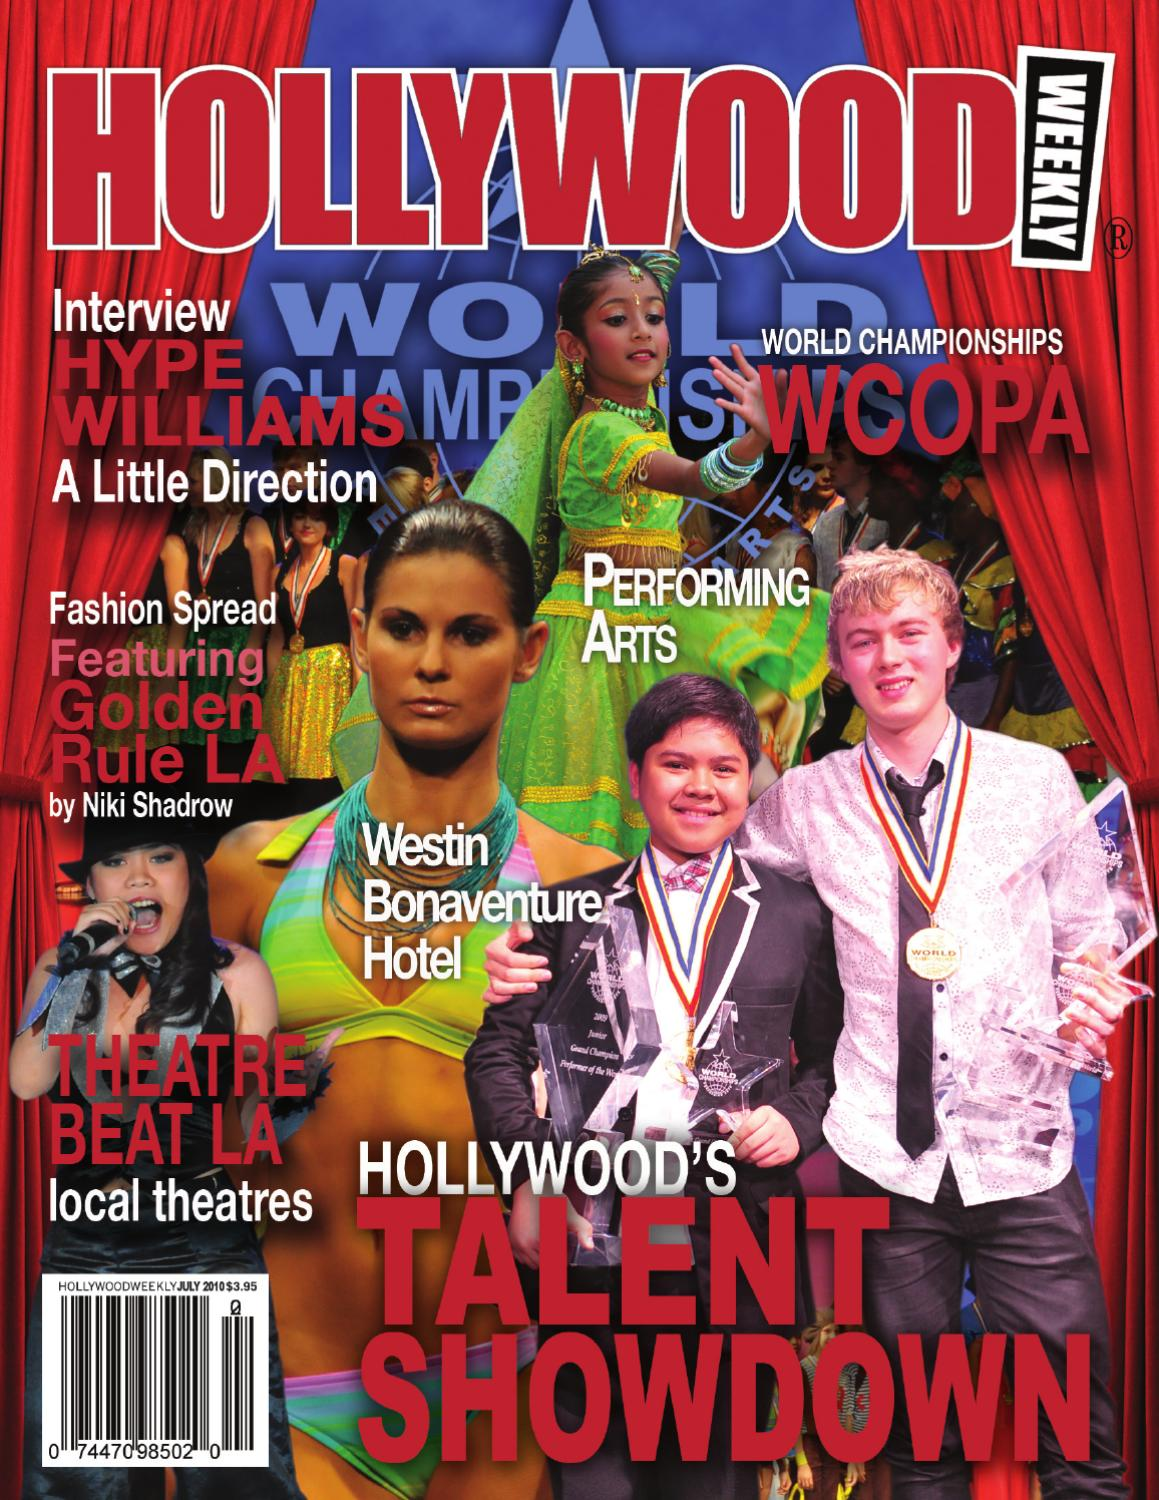 Hollywood Weekly July 2010 WCOPA by Hollywood Weekly